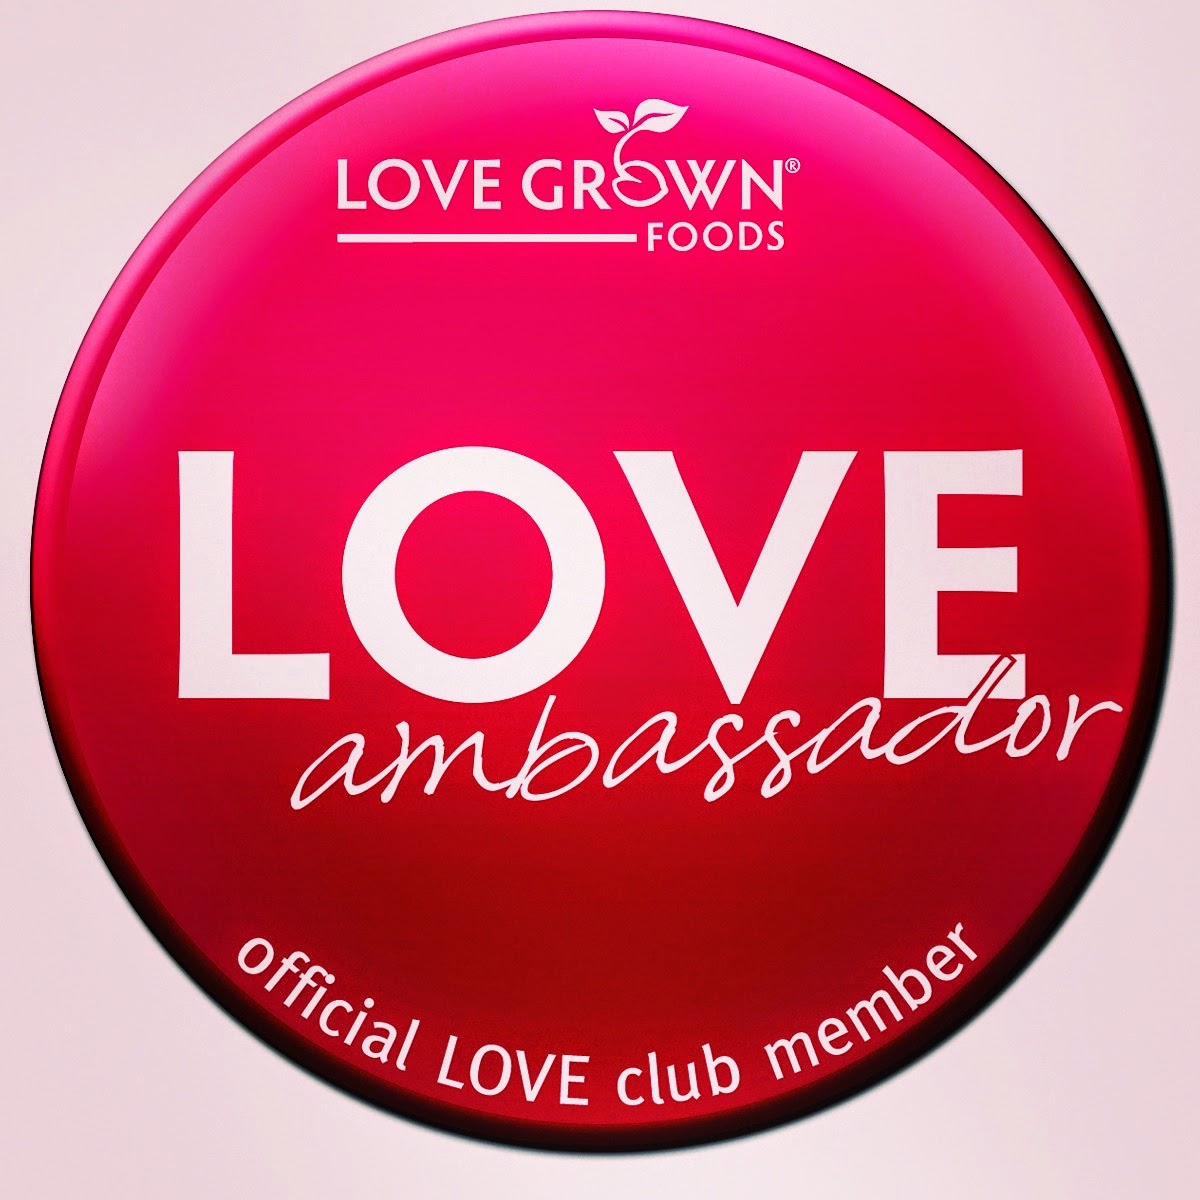 I'm part of the Love Grown Team!